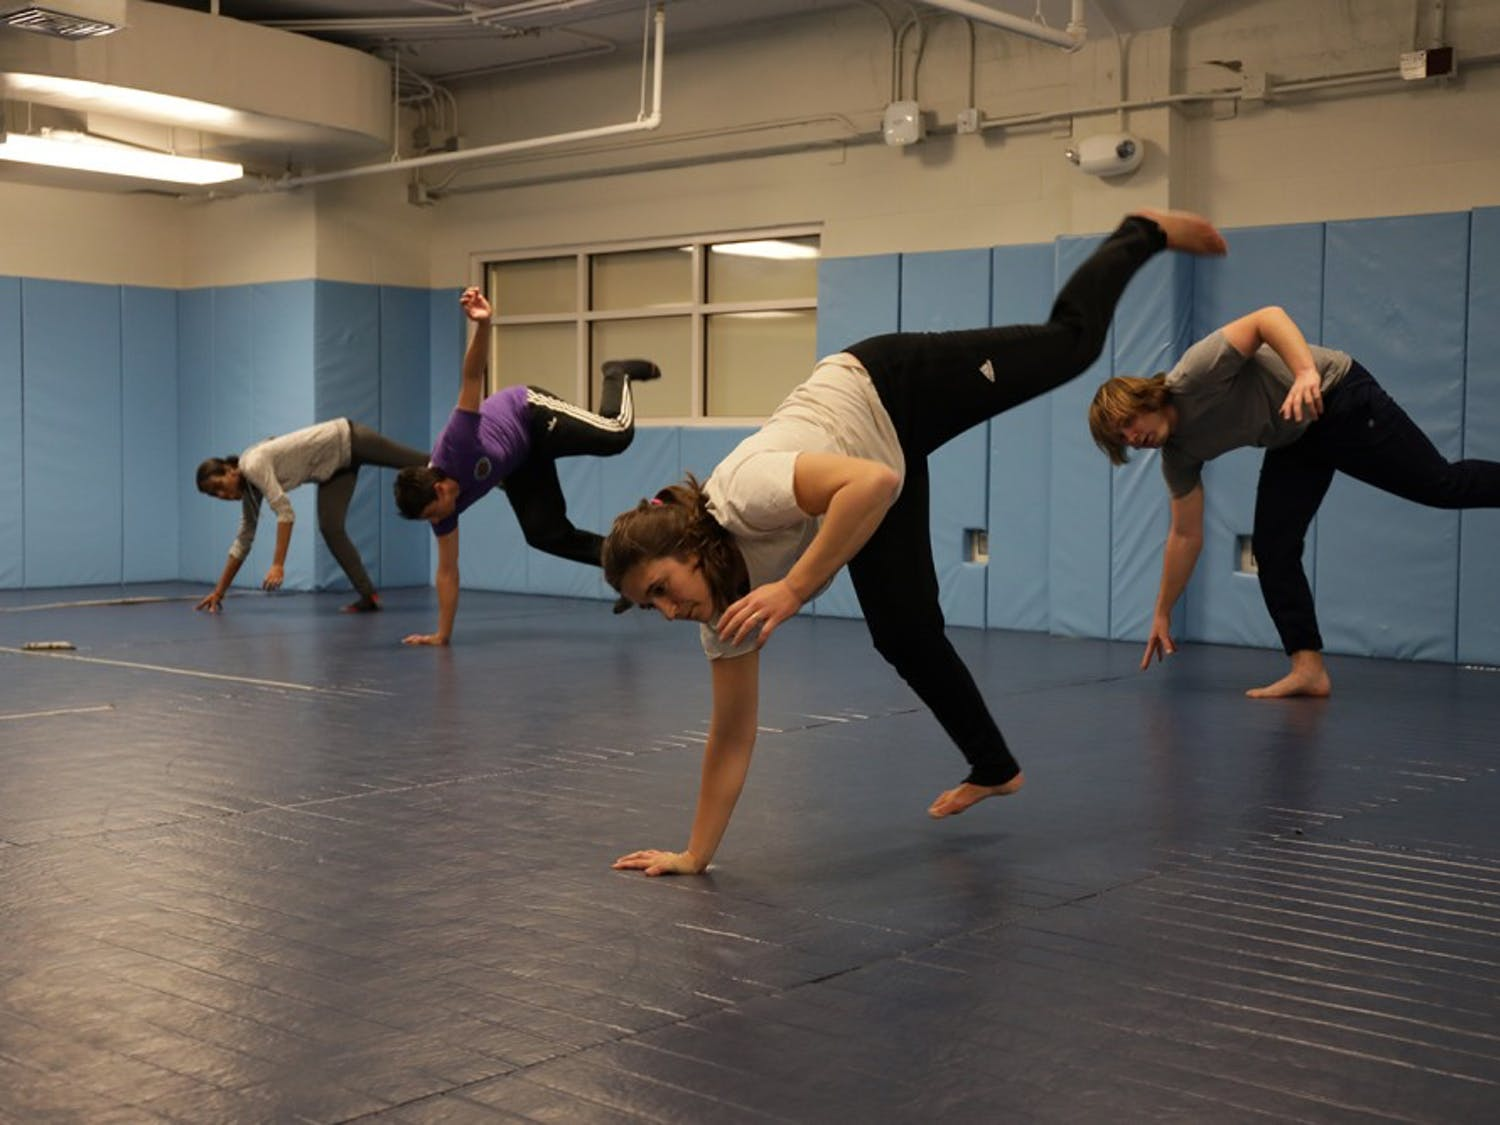 Quinn Hoffman (center) leads (from left to right) Maudrie Alexis, Joe Garay and Andrew Tillett in capoeira exercises Thursday night.